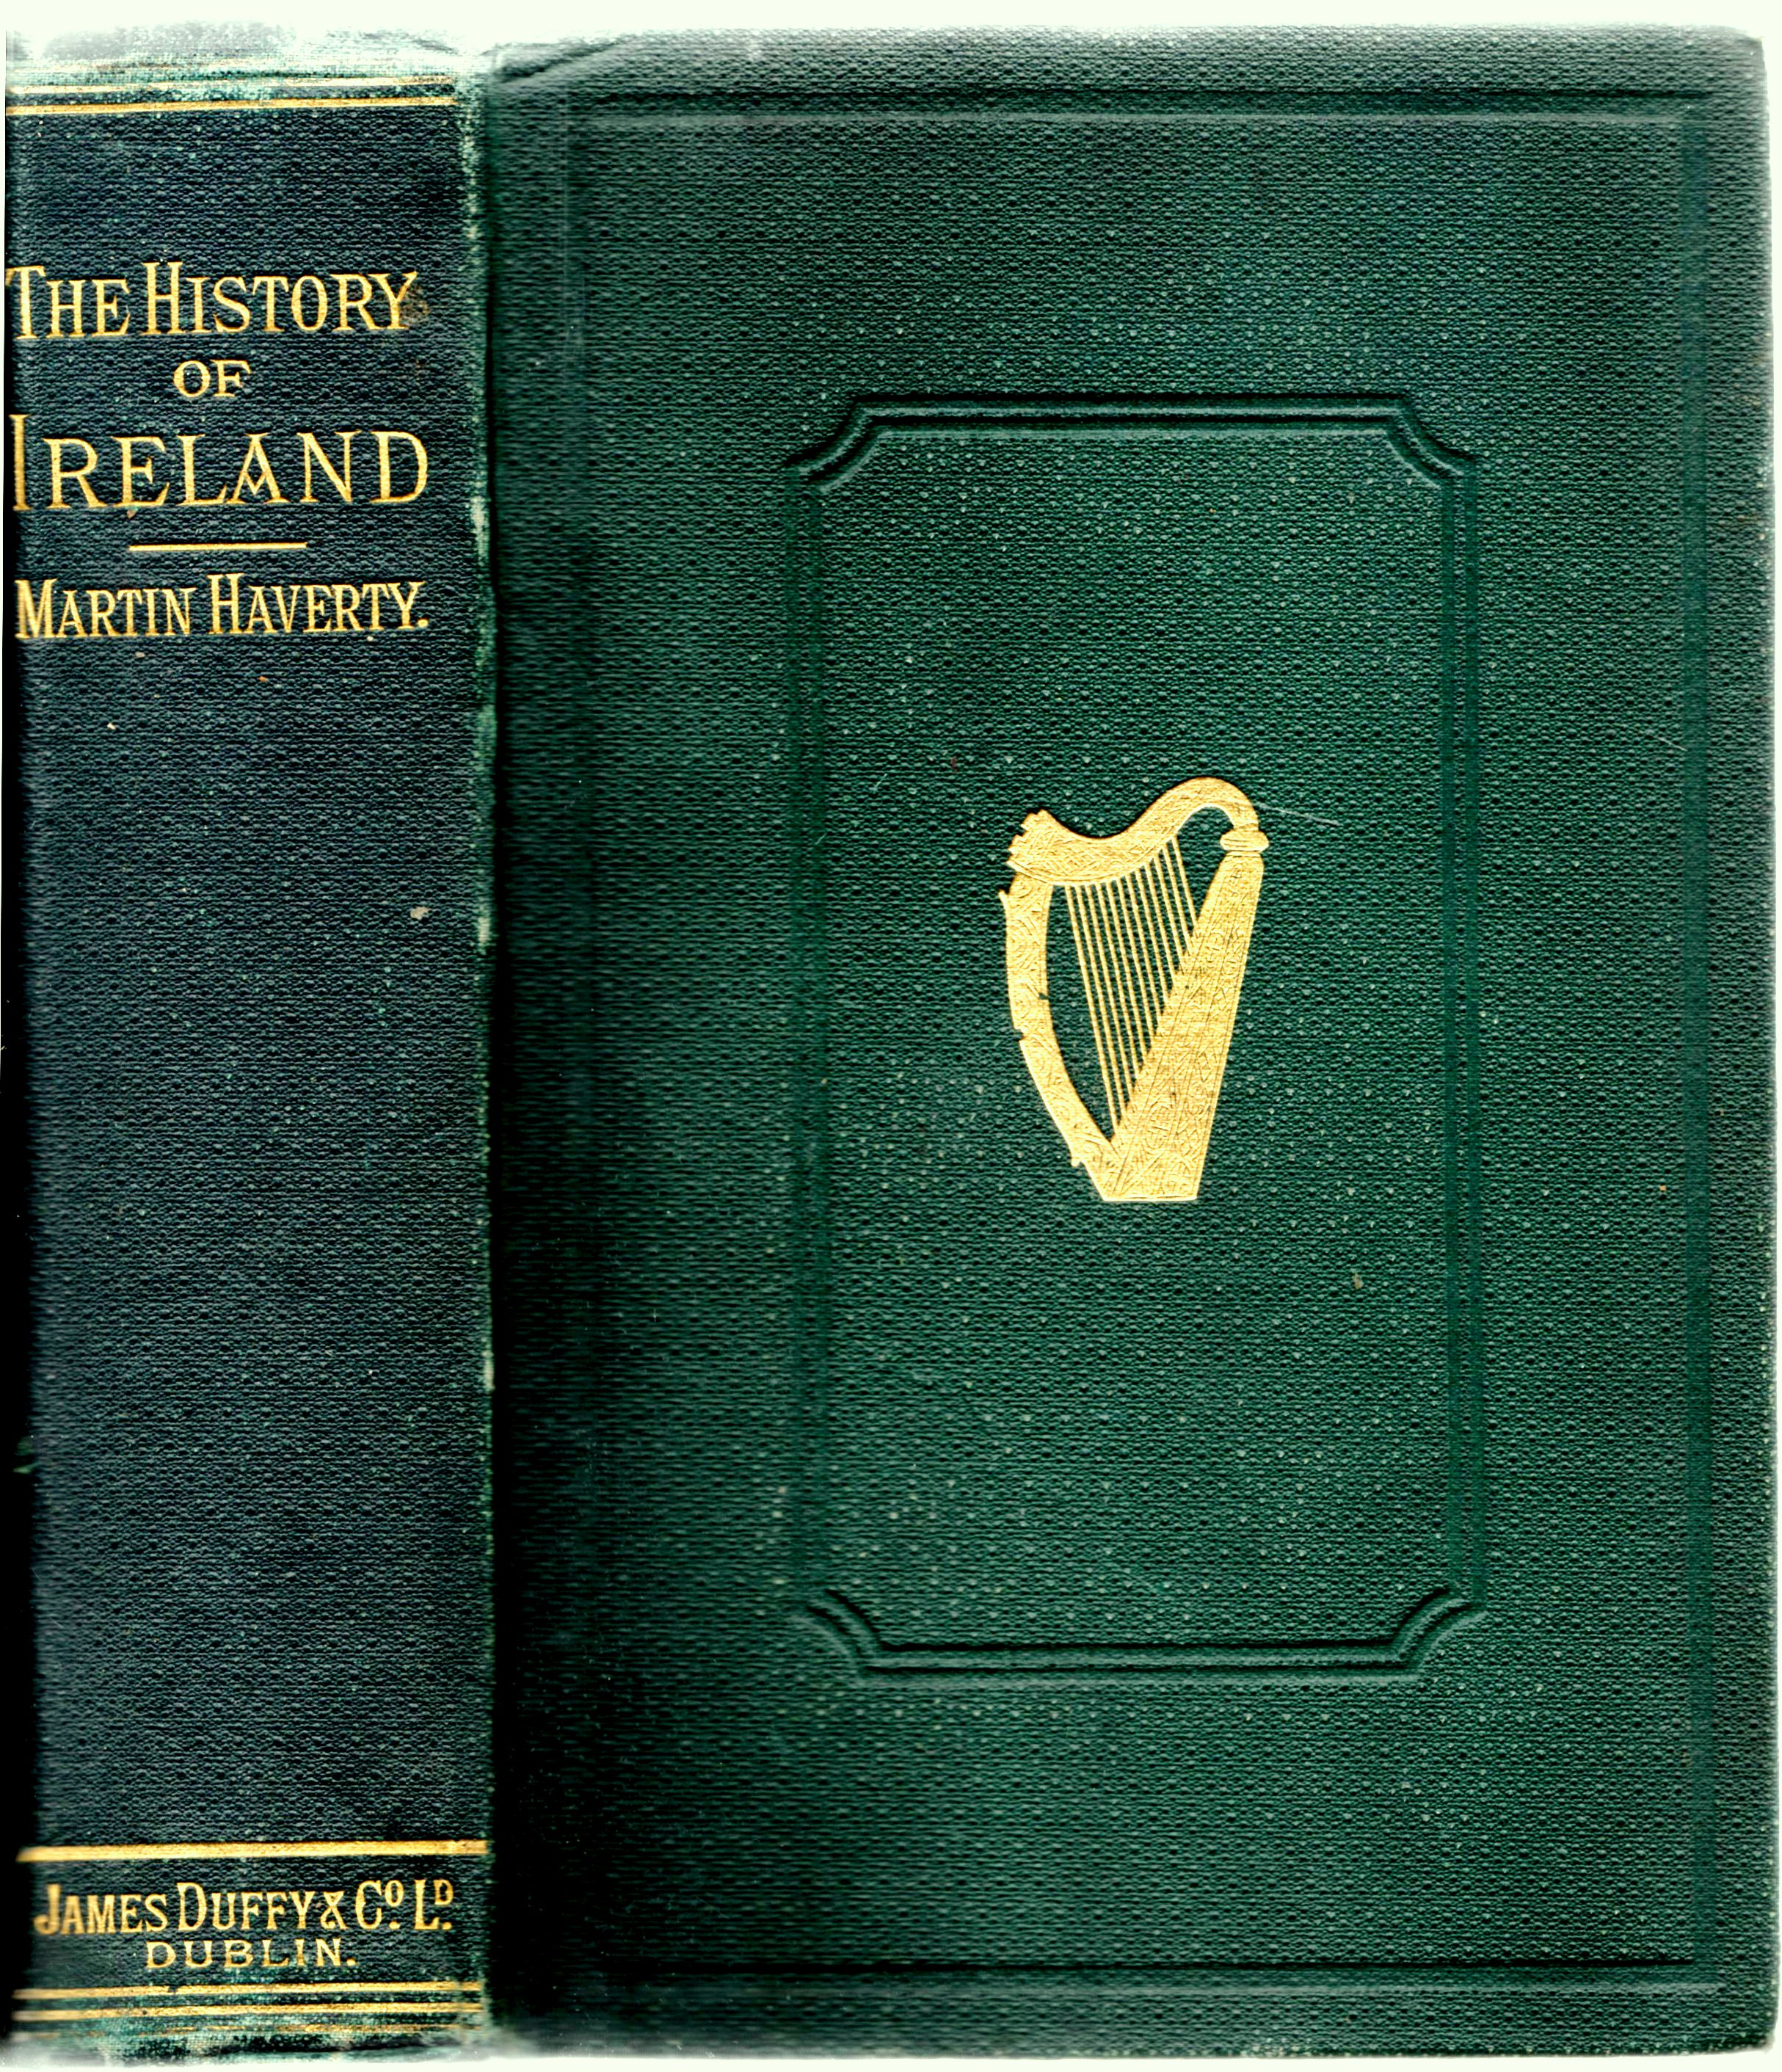 Image for The History of Ireland, Ancient and Modern. Derived From Our Native Annals, From the Most Recent Researches of Eminent Irish Scholars and Antiquaries, From the State Papers, and From All the Resources of Irish History Now Available .